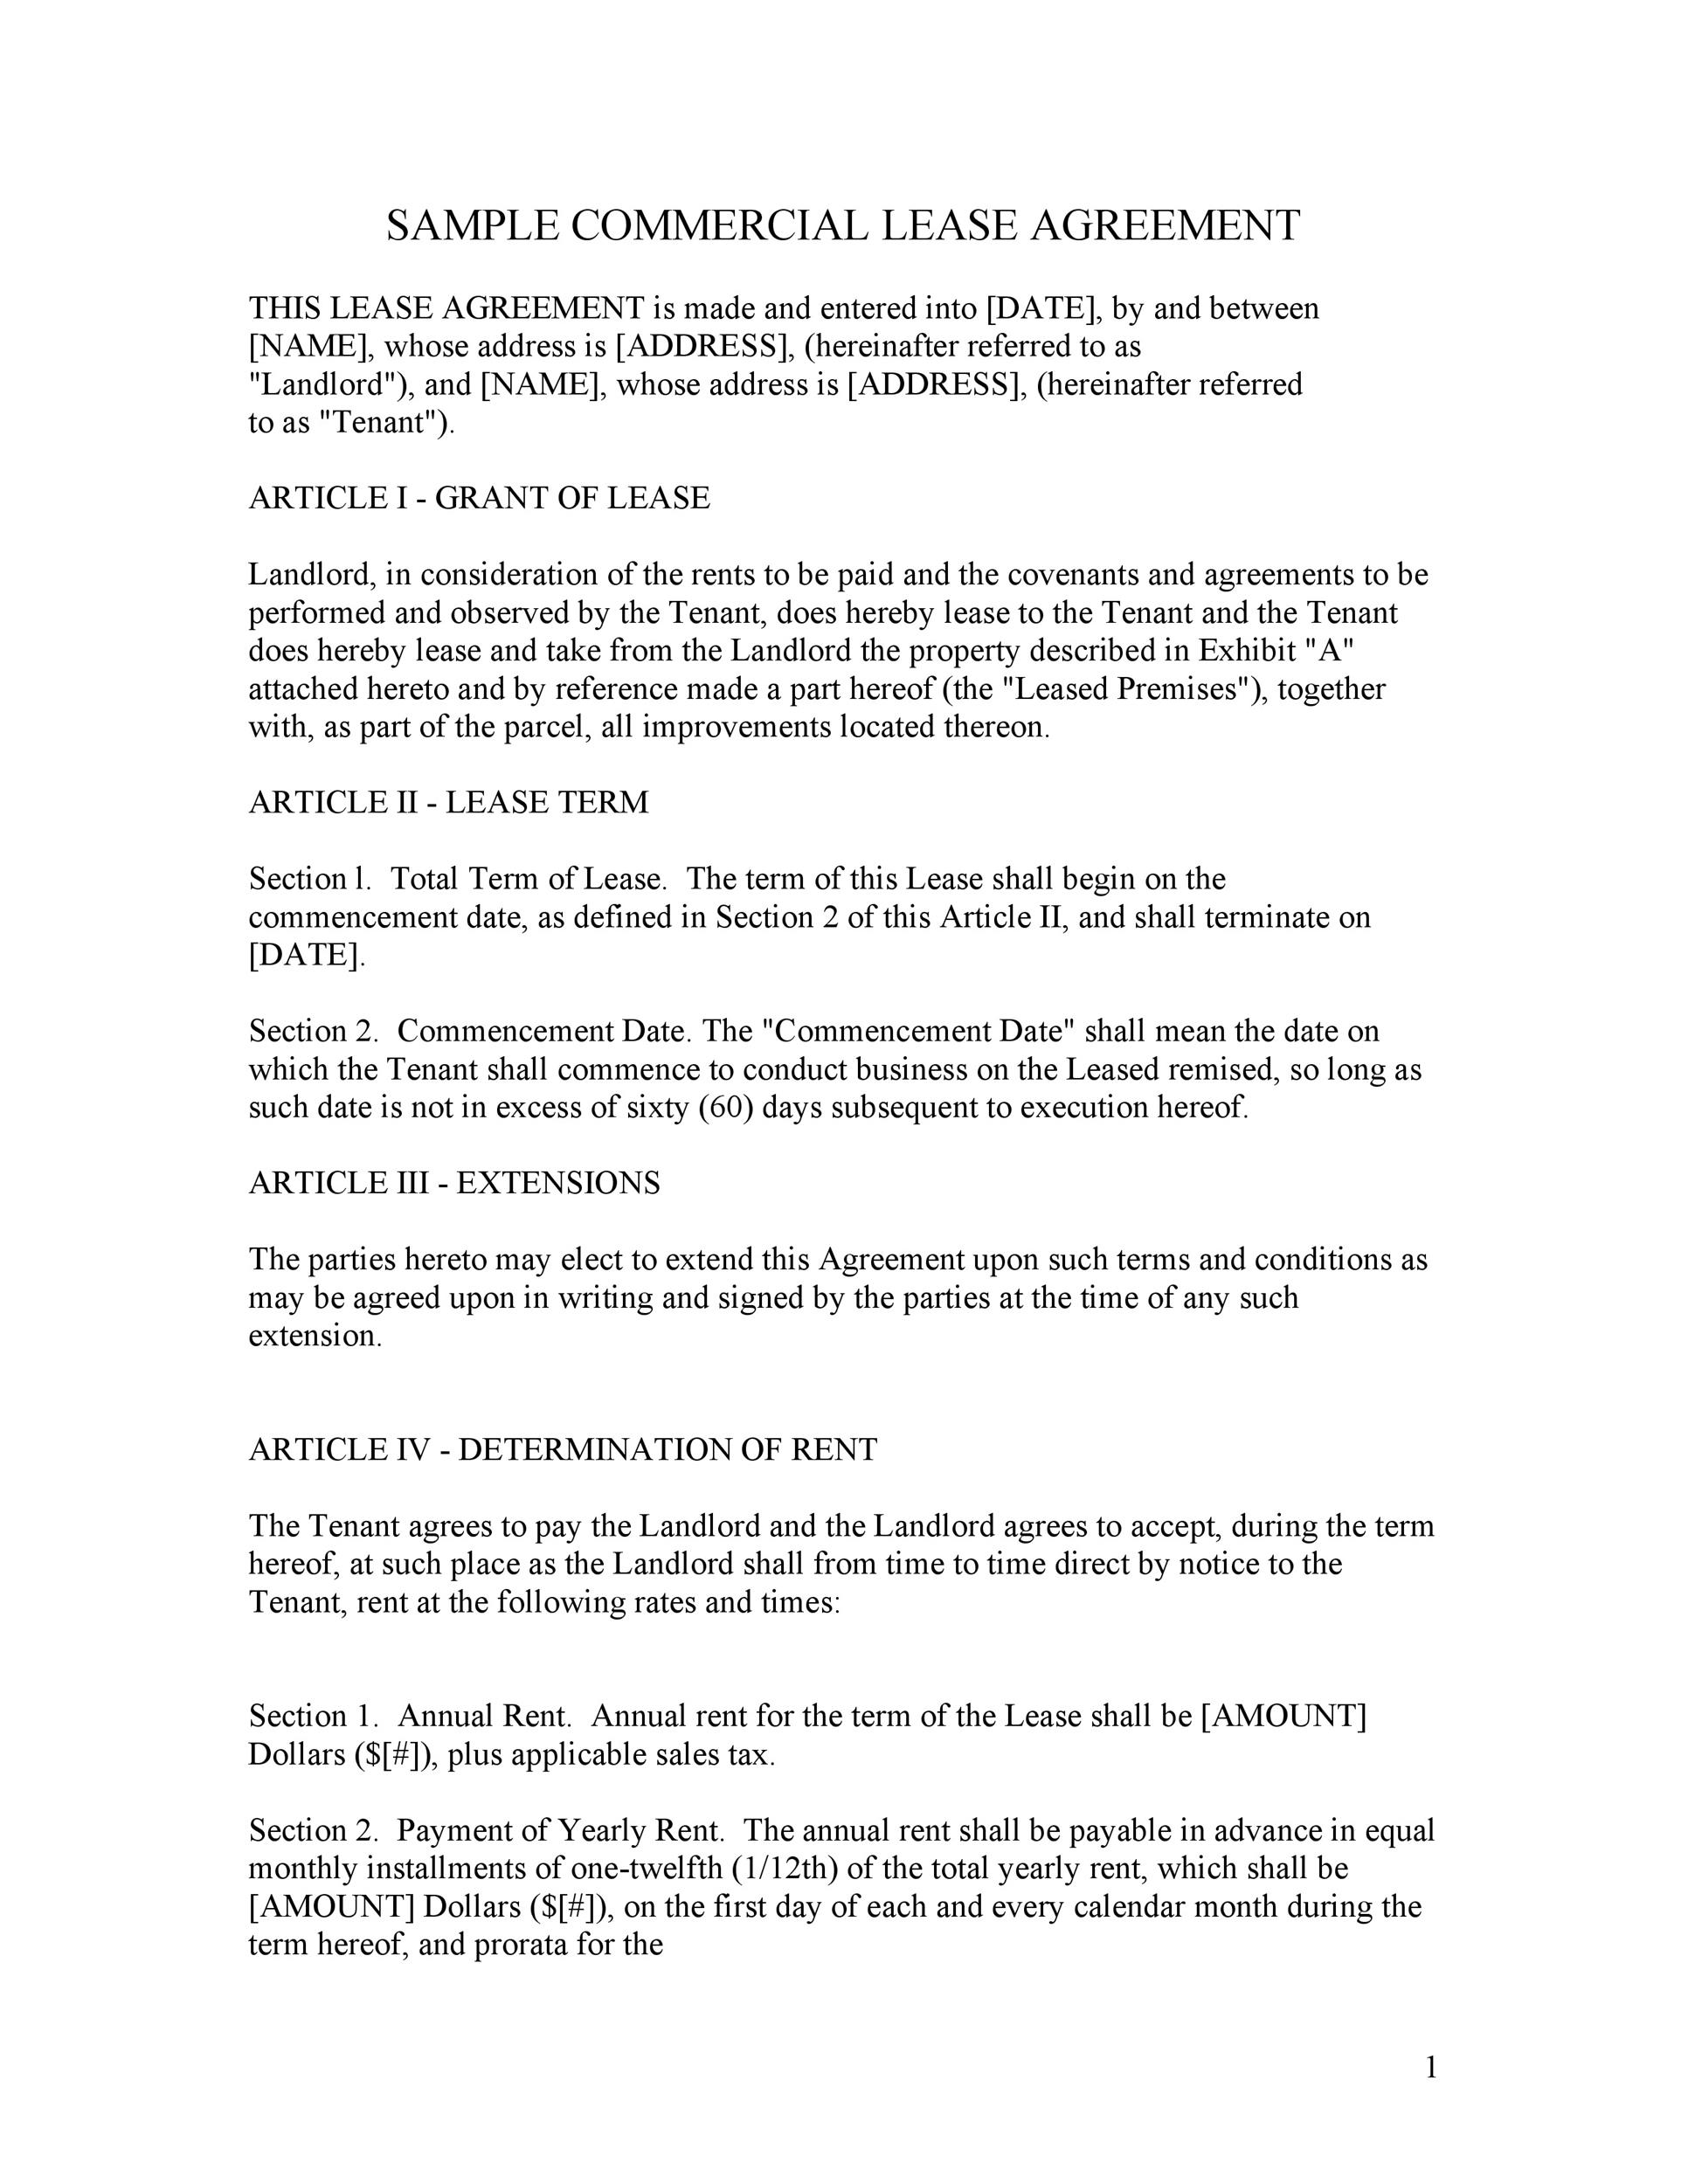 Free Commercial Lease Agreement Template 07